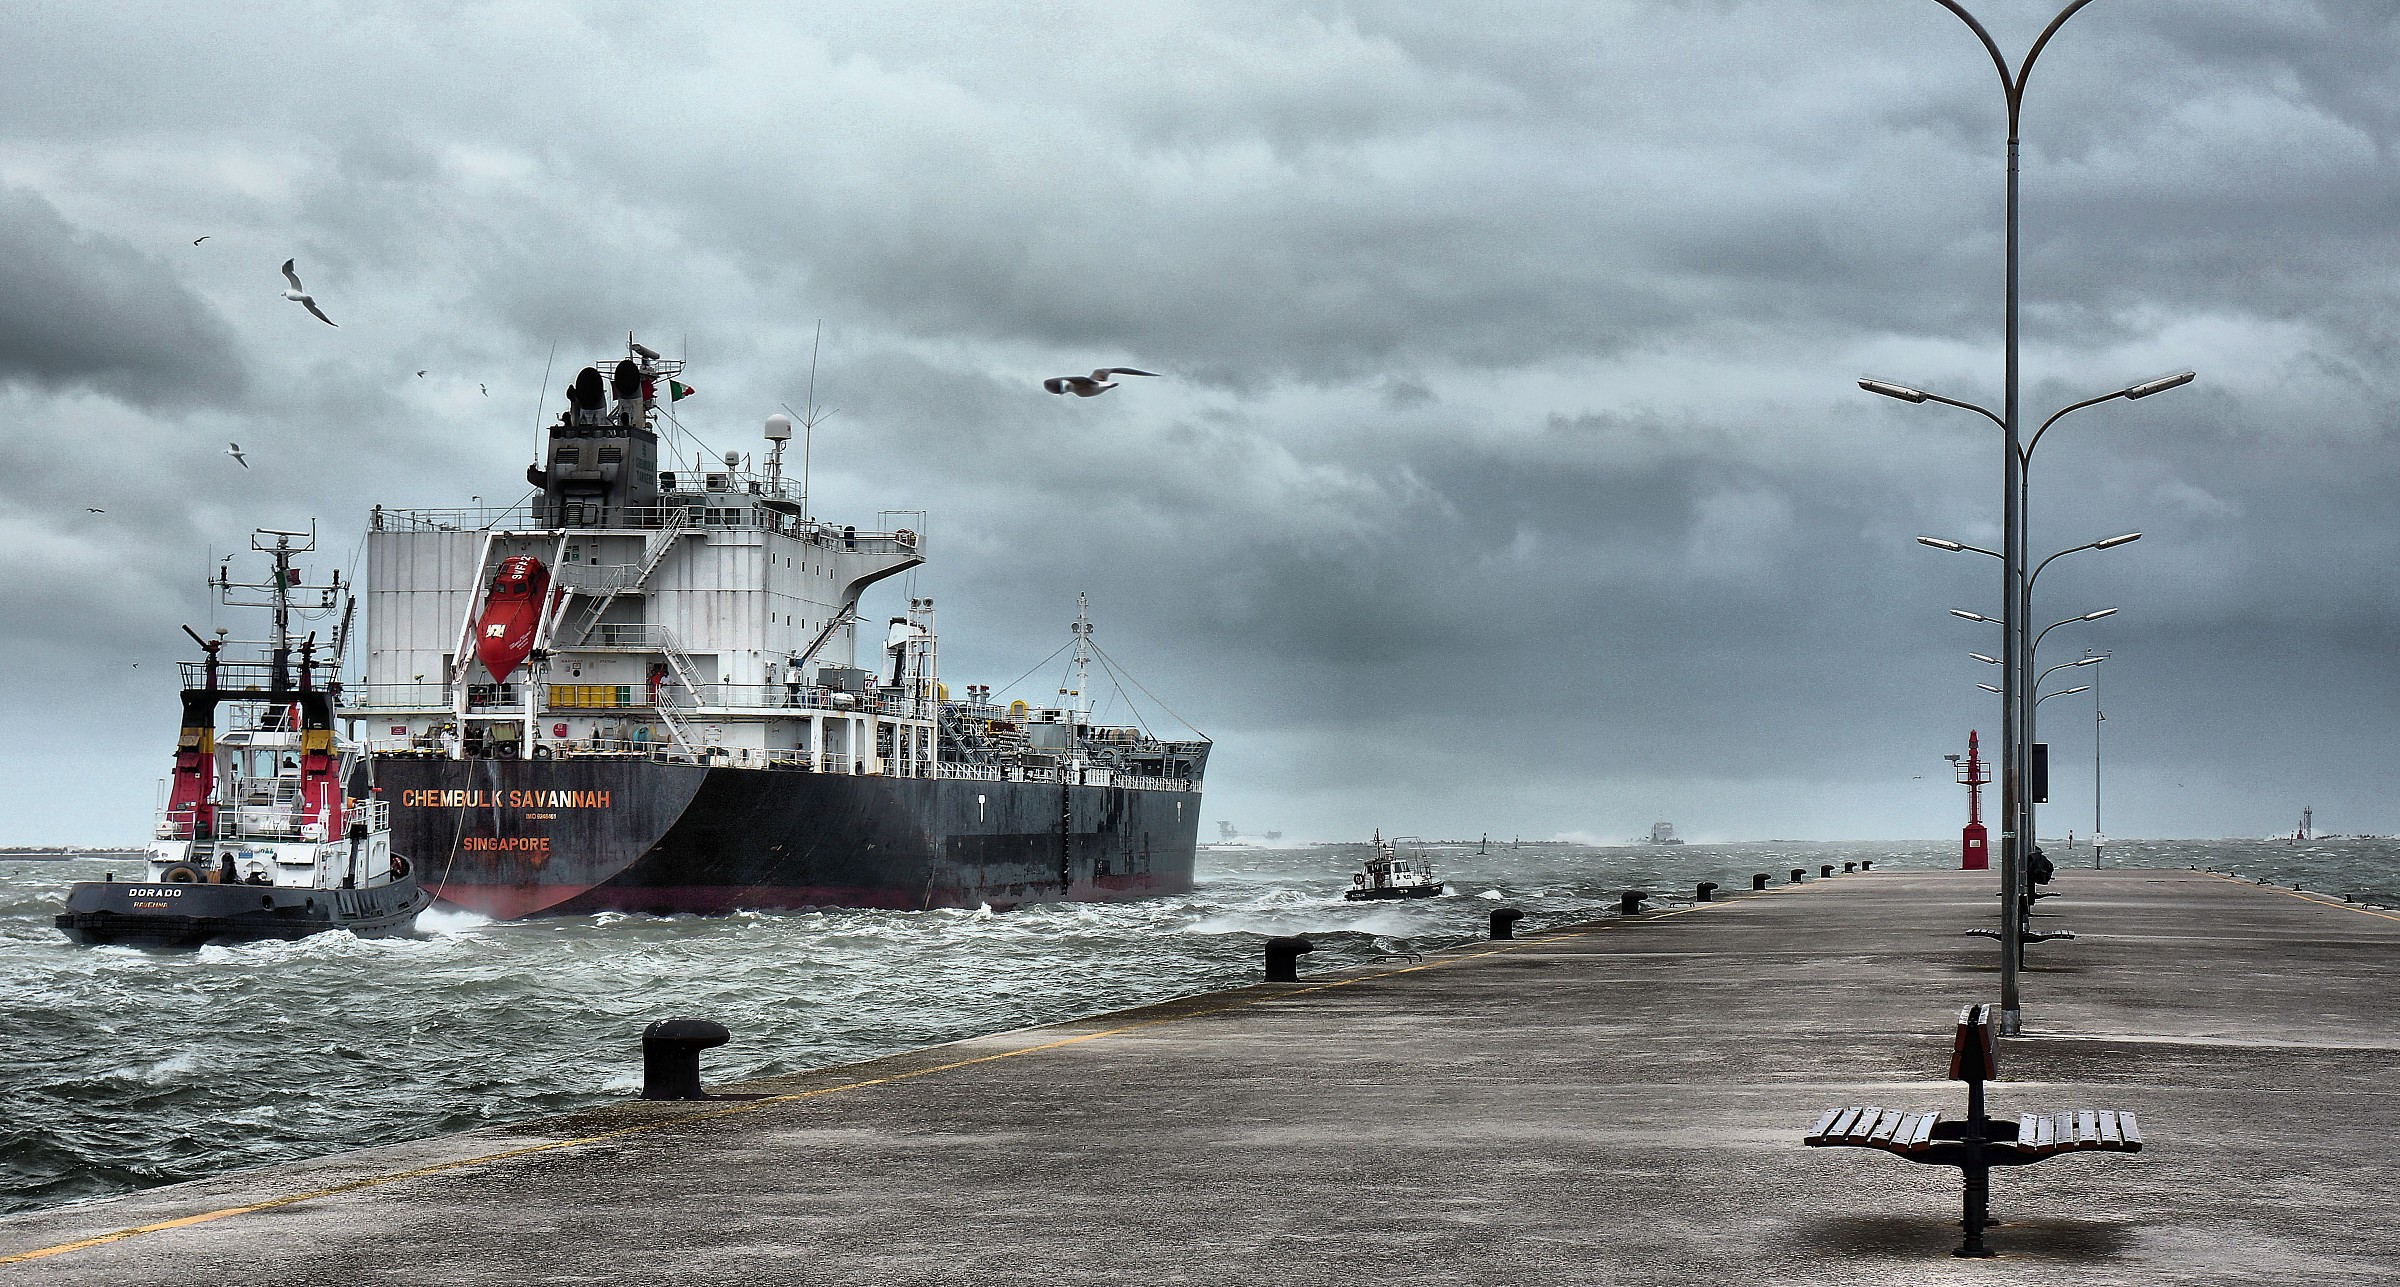 Storm in the port...